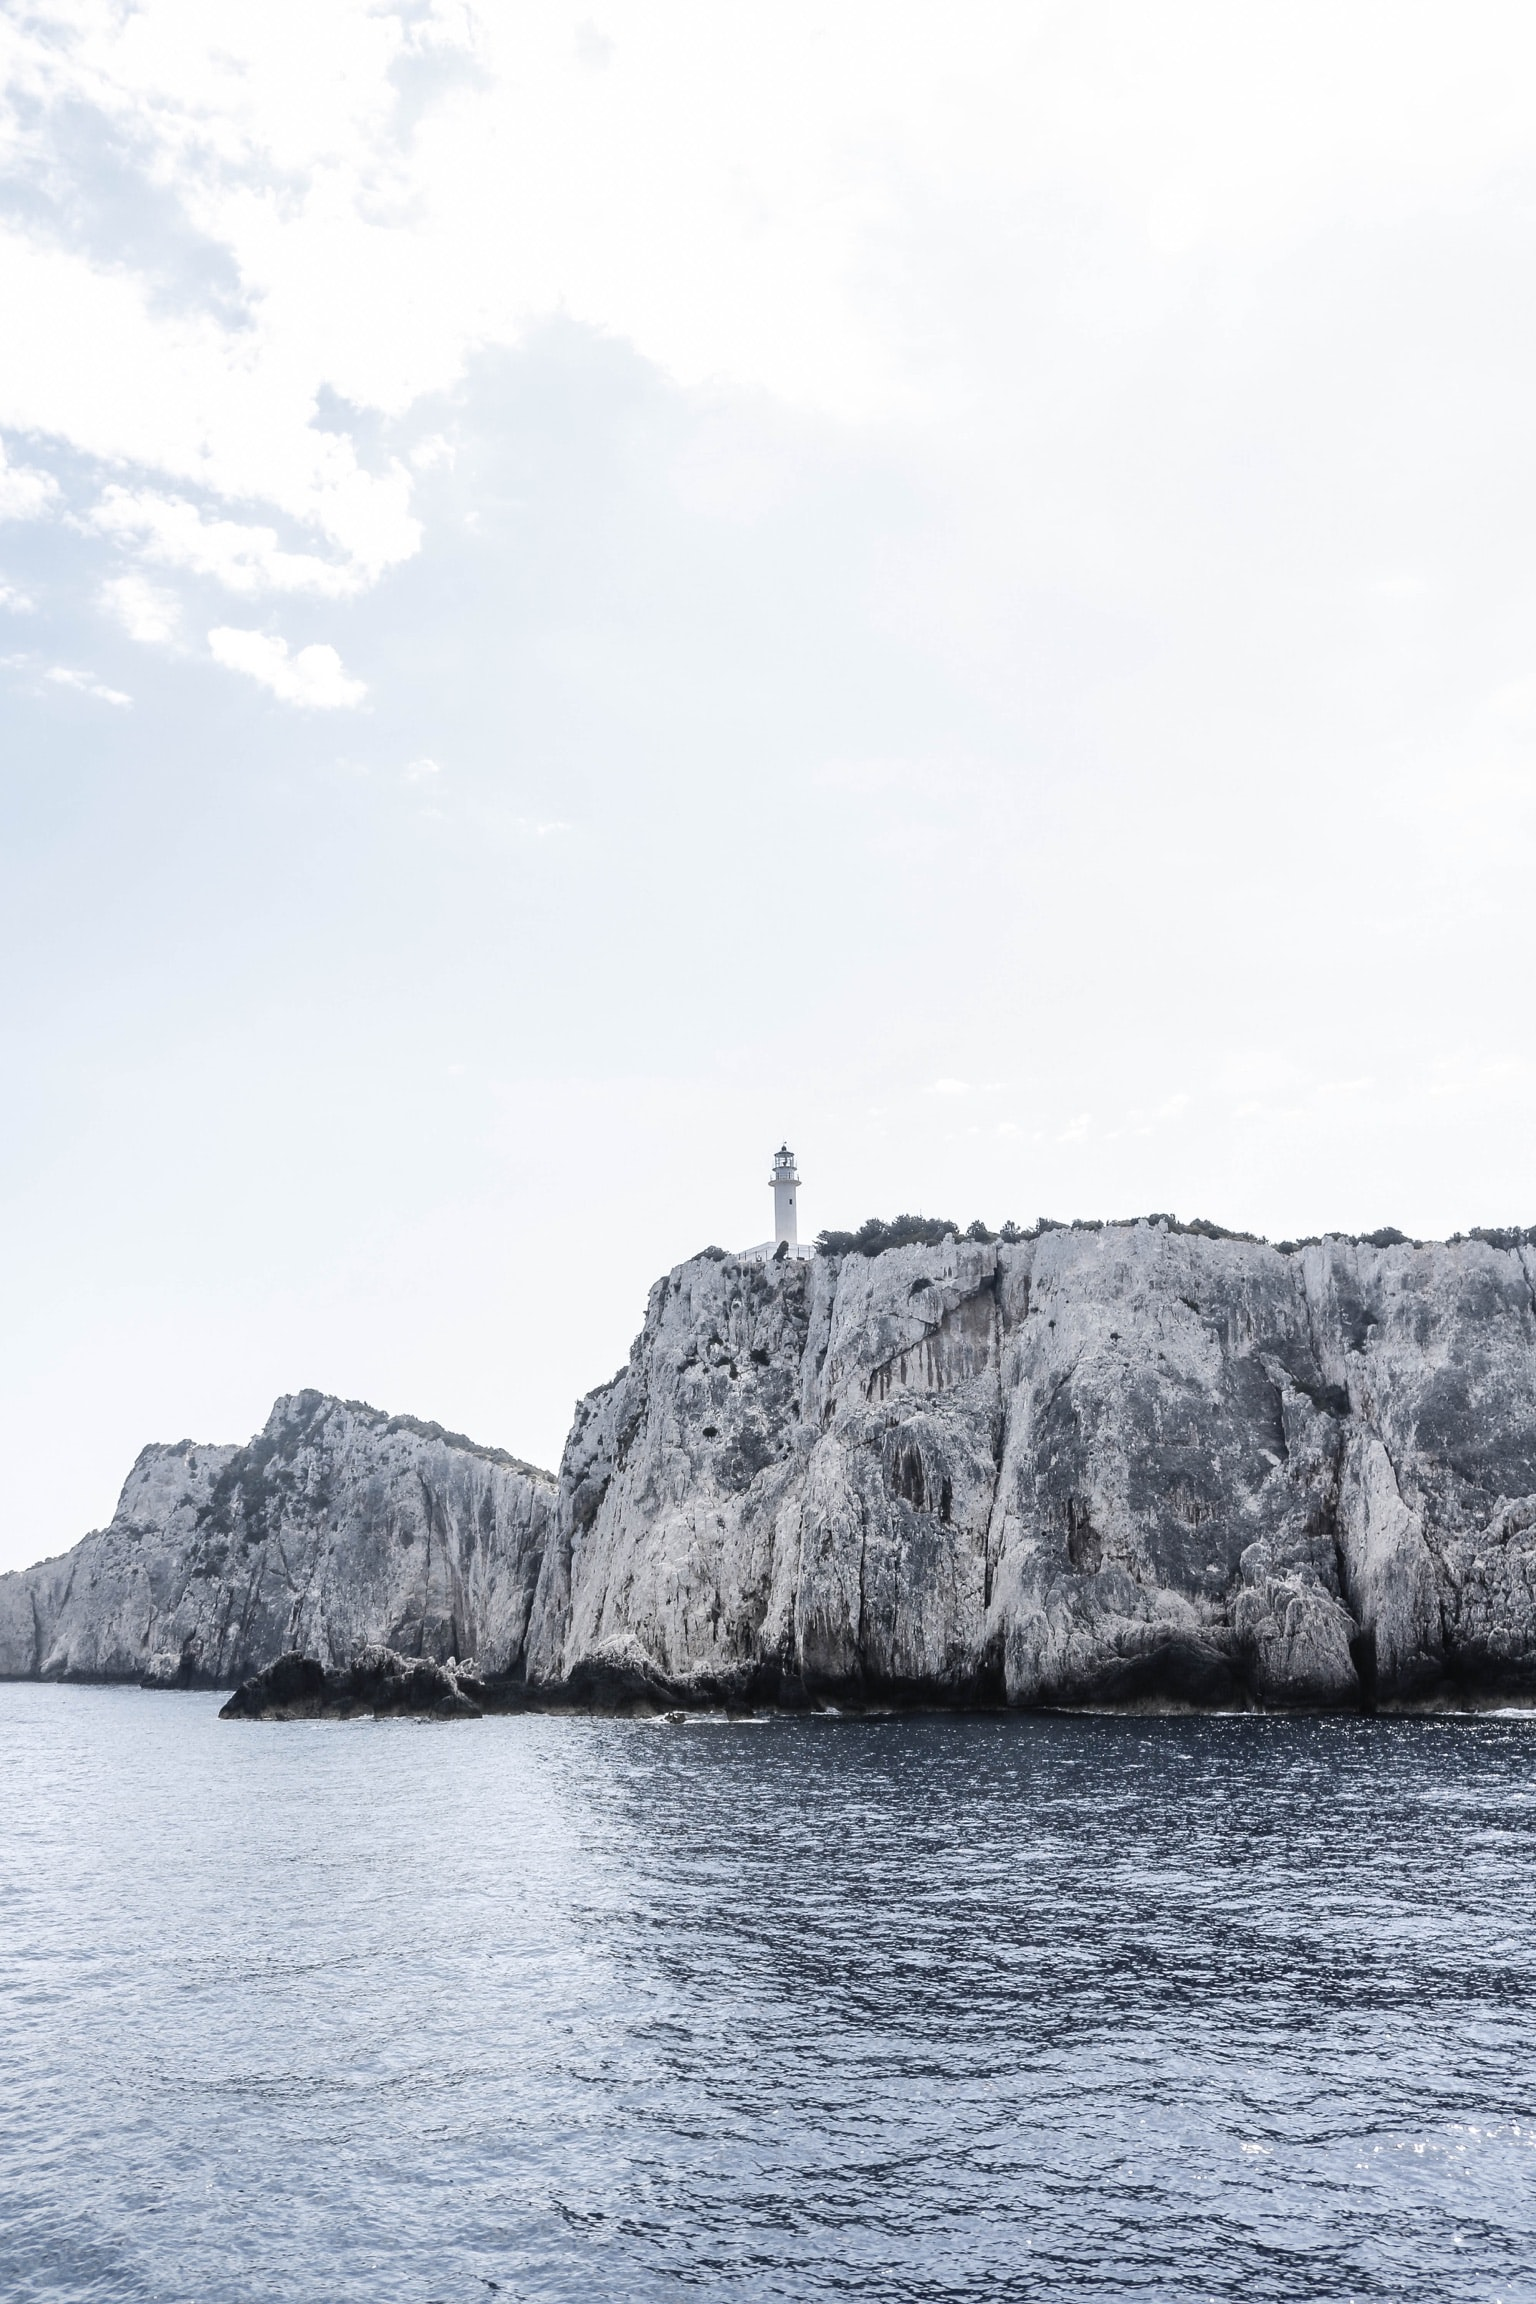 grayscale photography of lighthouse on cliff